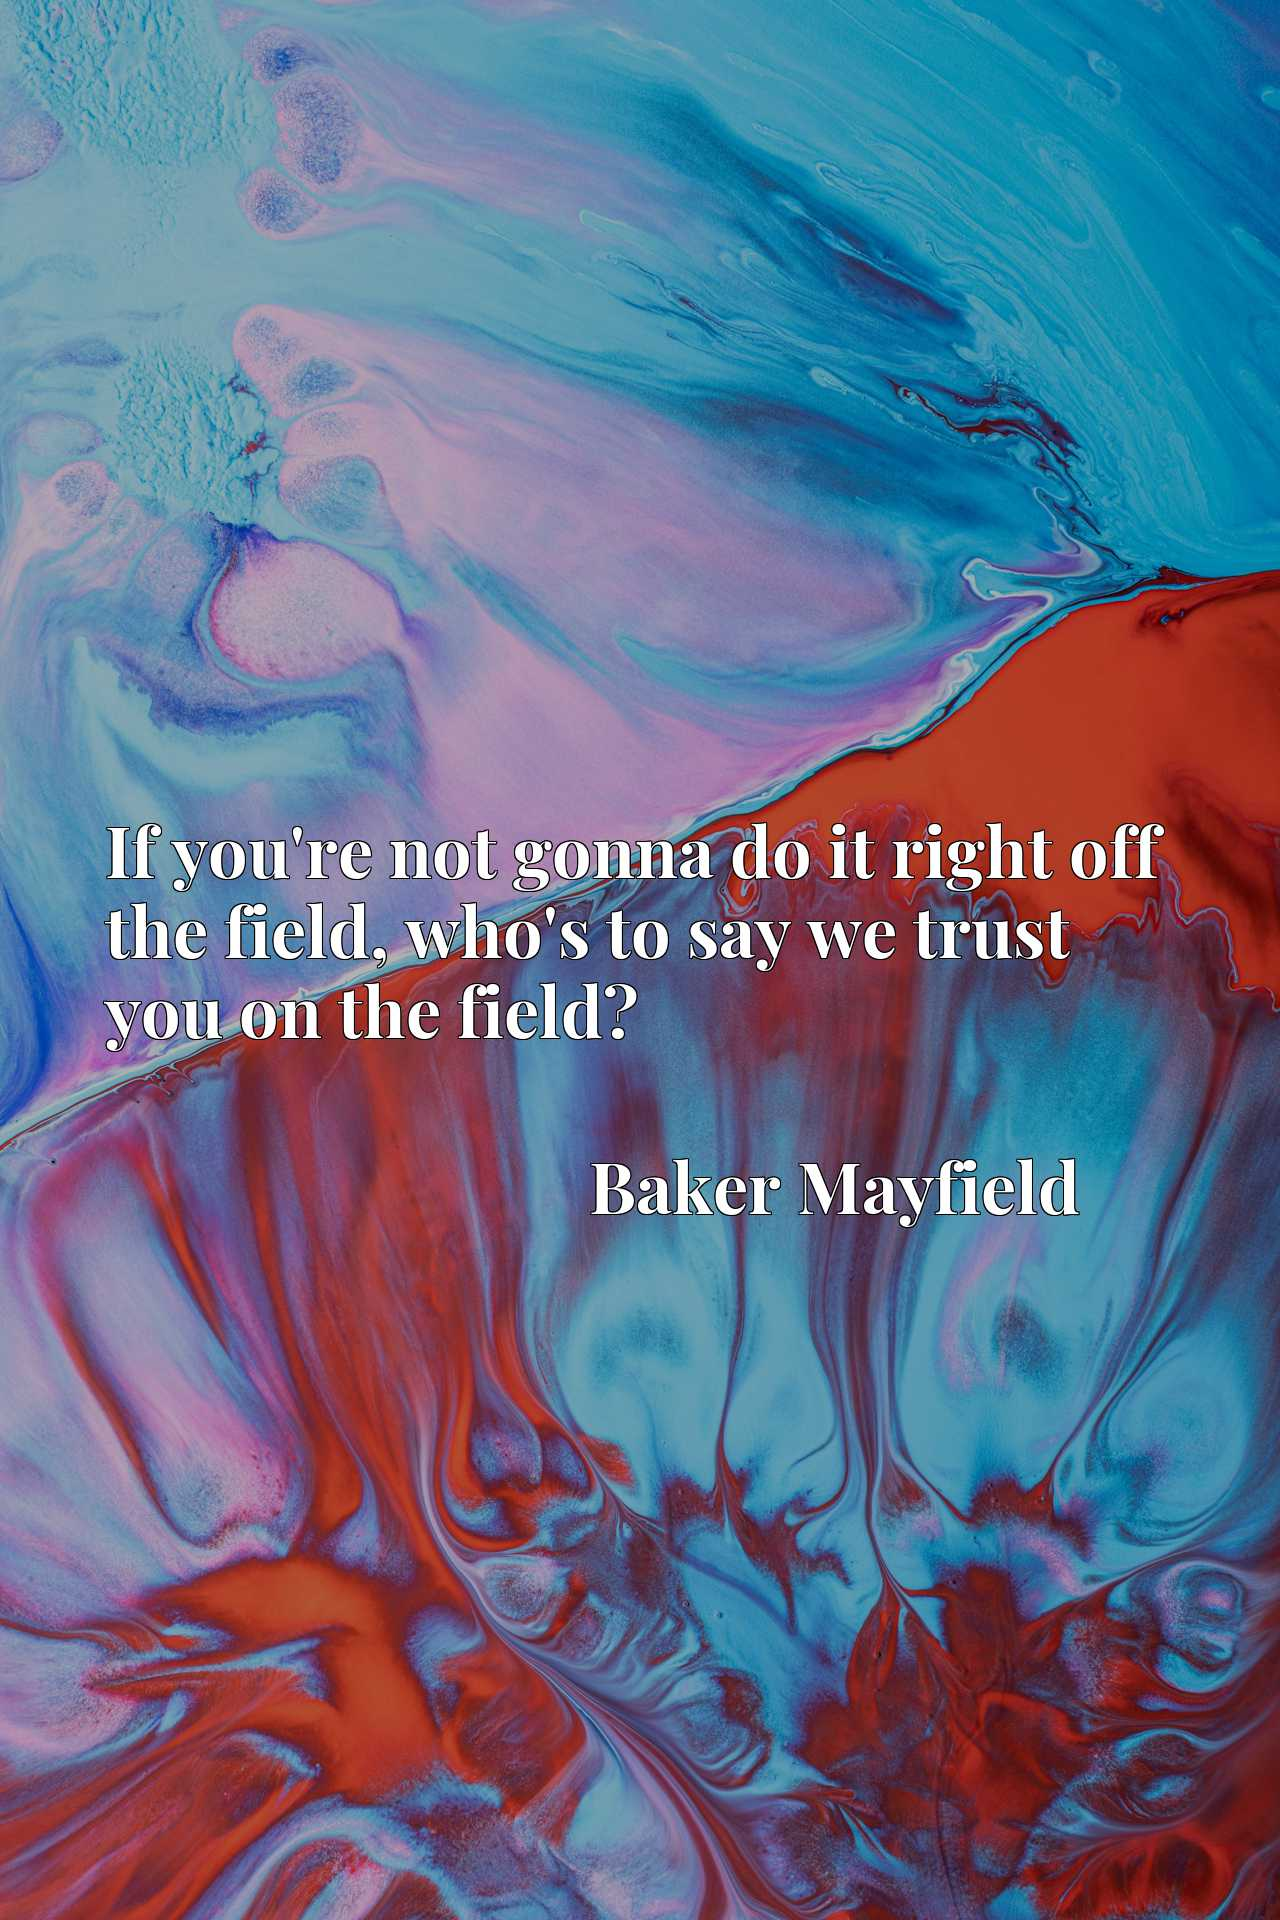 Quote Picture :If you're not gonna do it right off the field, who's to say we trust you on the field?